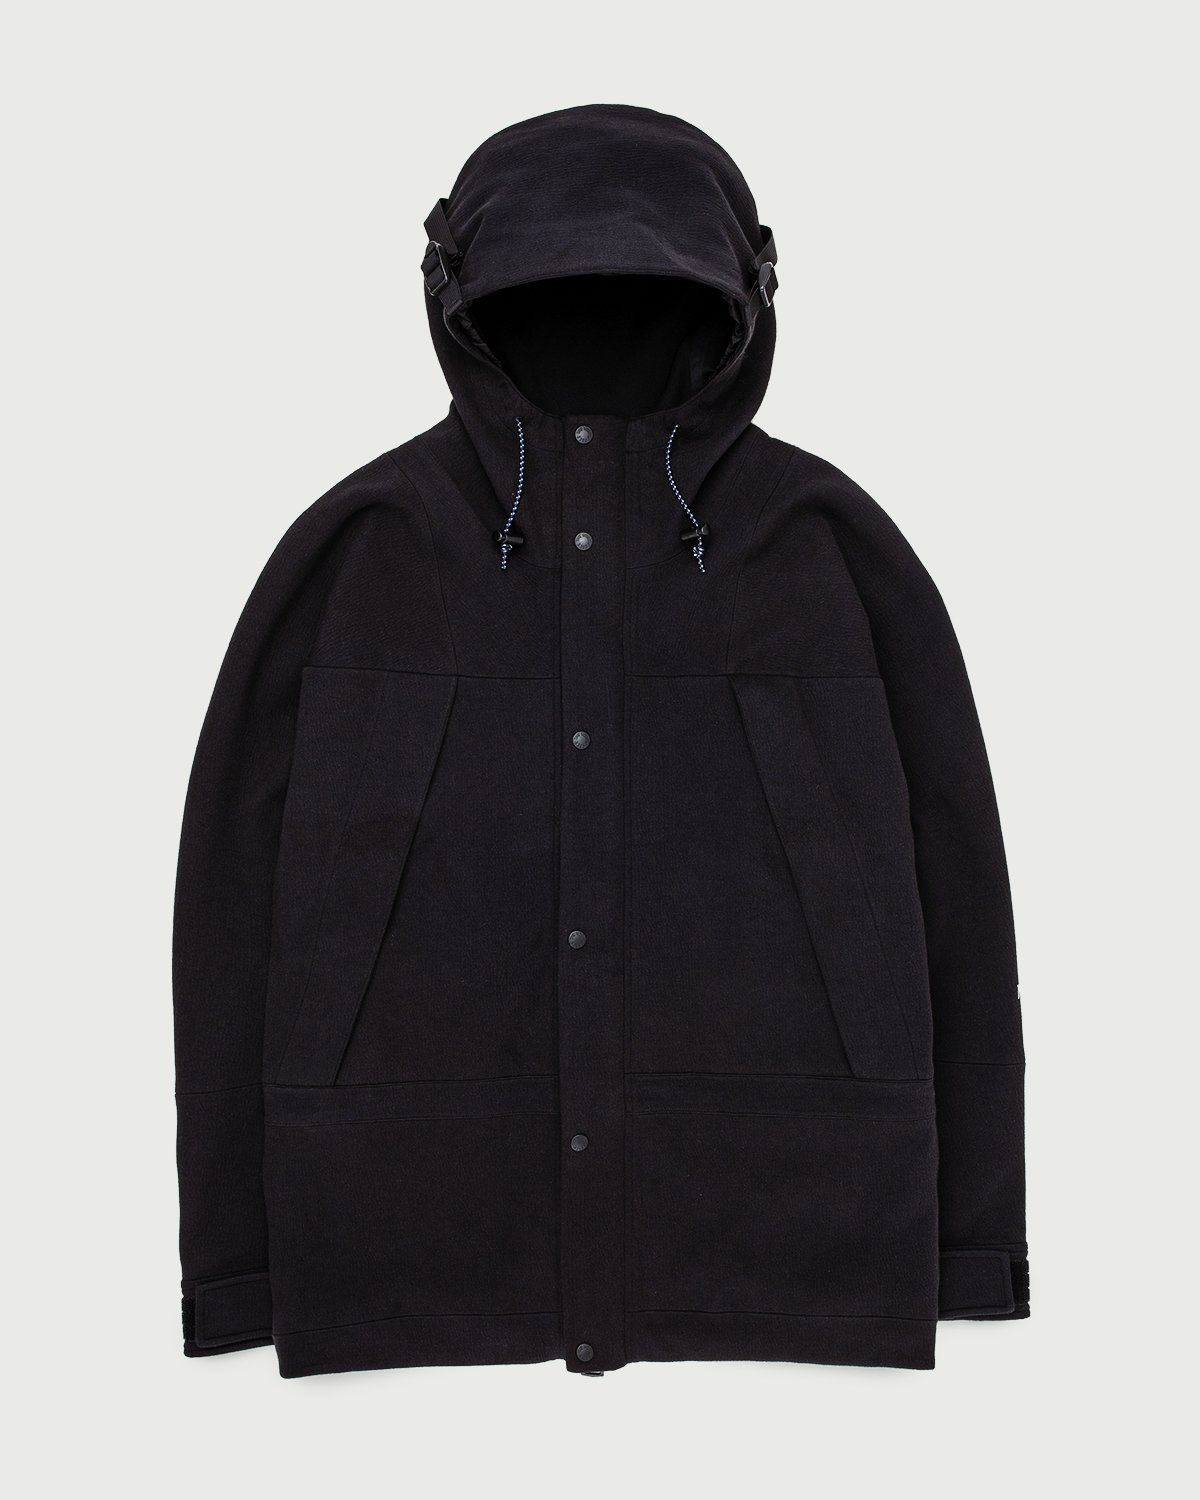 The North Face Black Series — Spacer Knit Mountain Light Jacket Black - Image 1